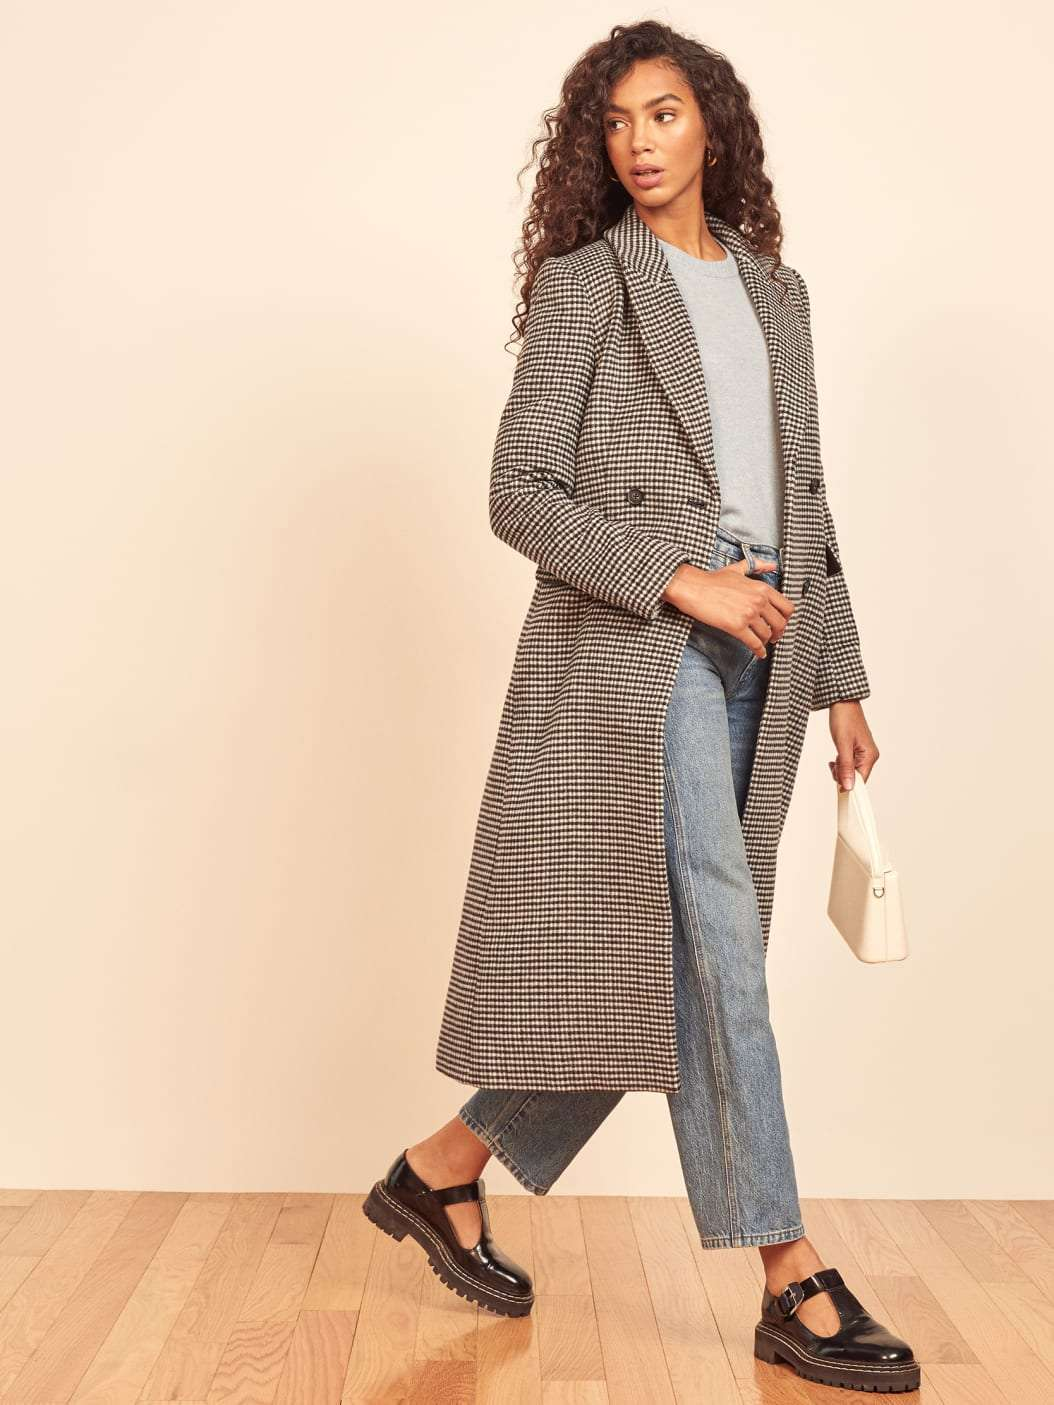 Reformation coats